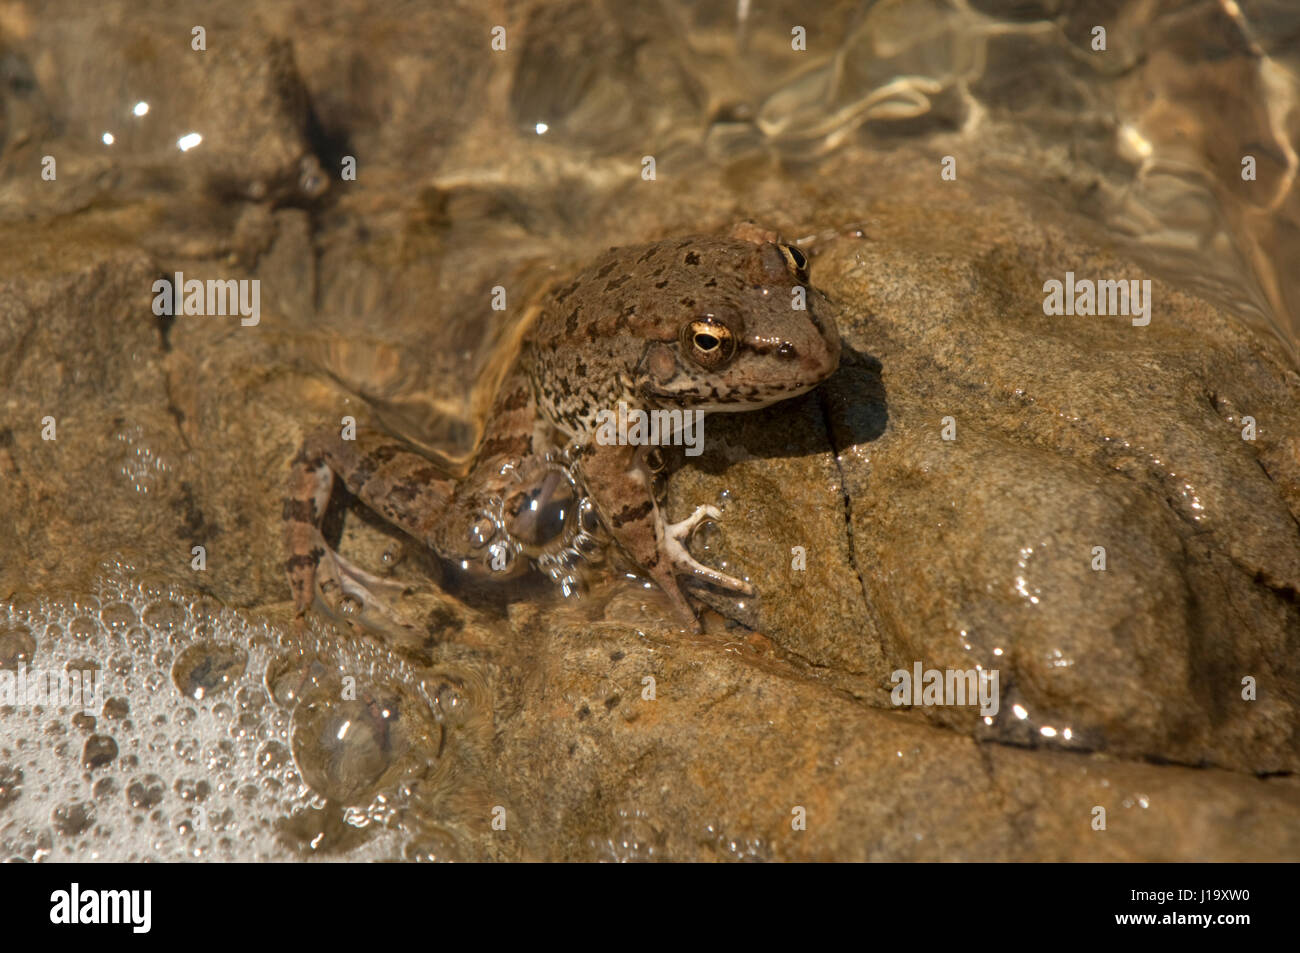 Levant water frog (Pelophylax bedriagae), formerly Rana b., holding onto a rock in a lake - Stock Image